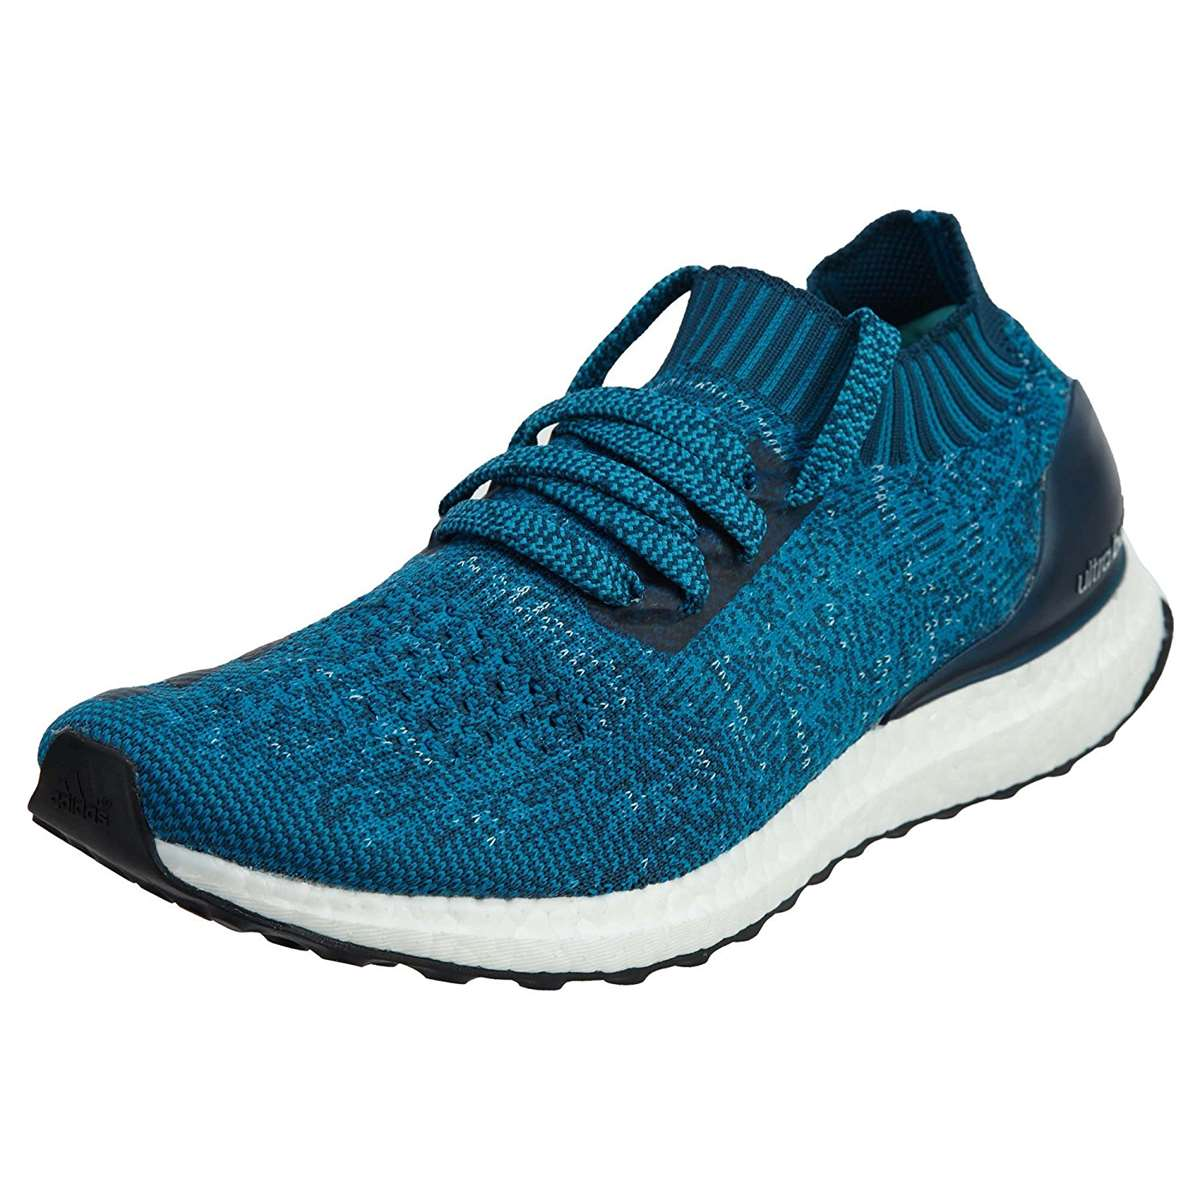 Adidas Men Ultraboost Uncaged Shoe by Adidas